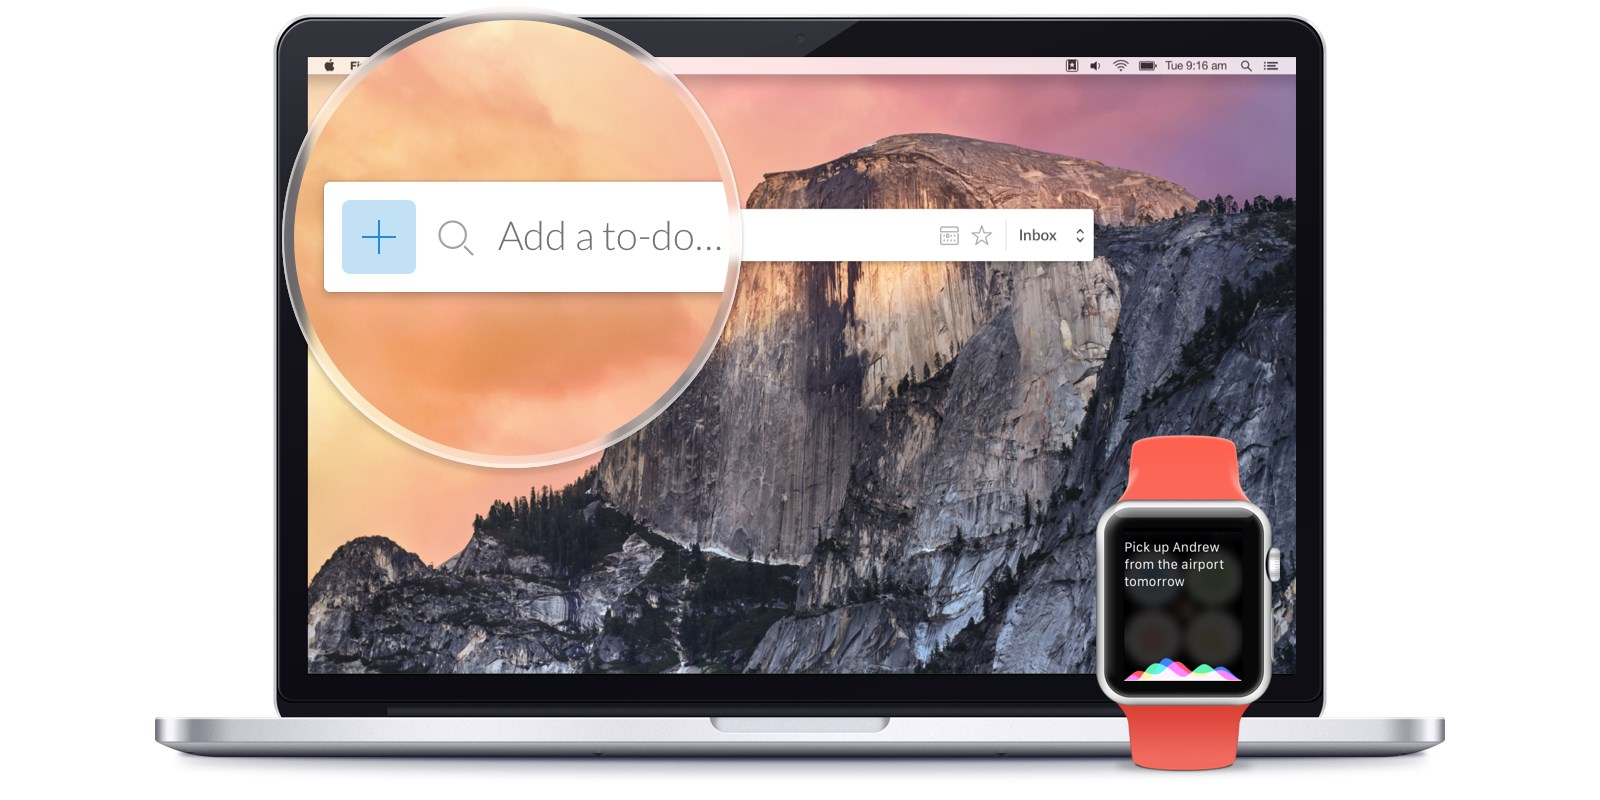 Wunderlist for Mac lets you add to-dos without switching apps